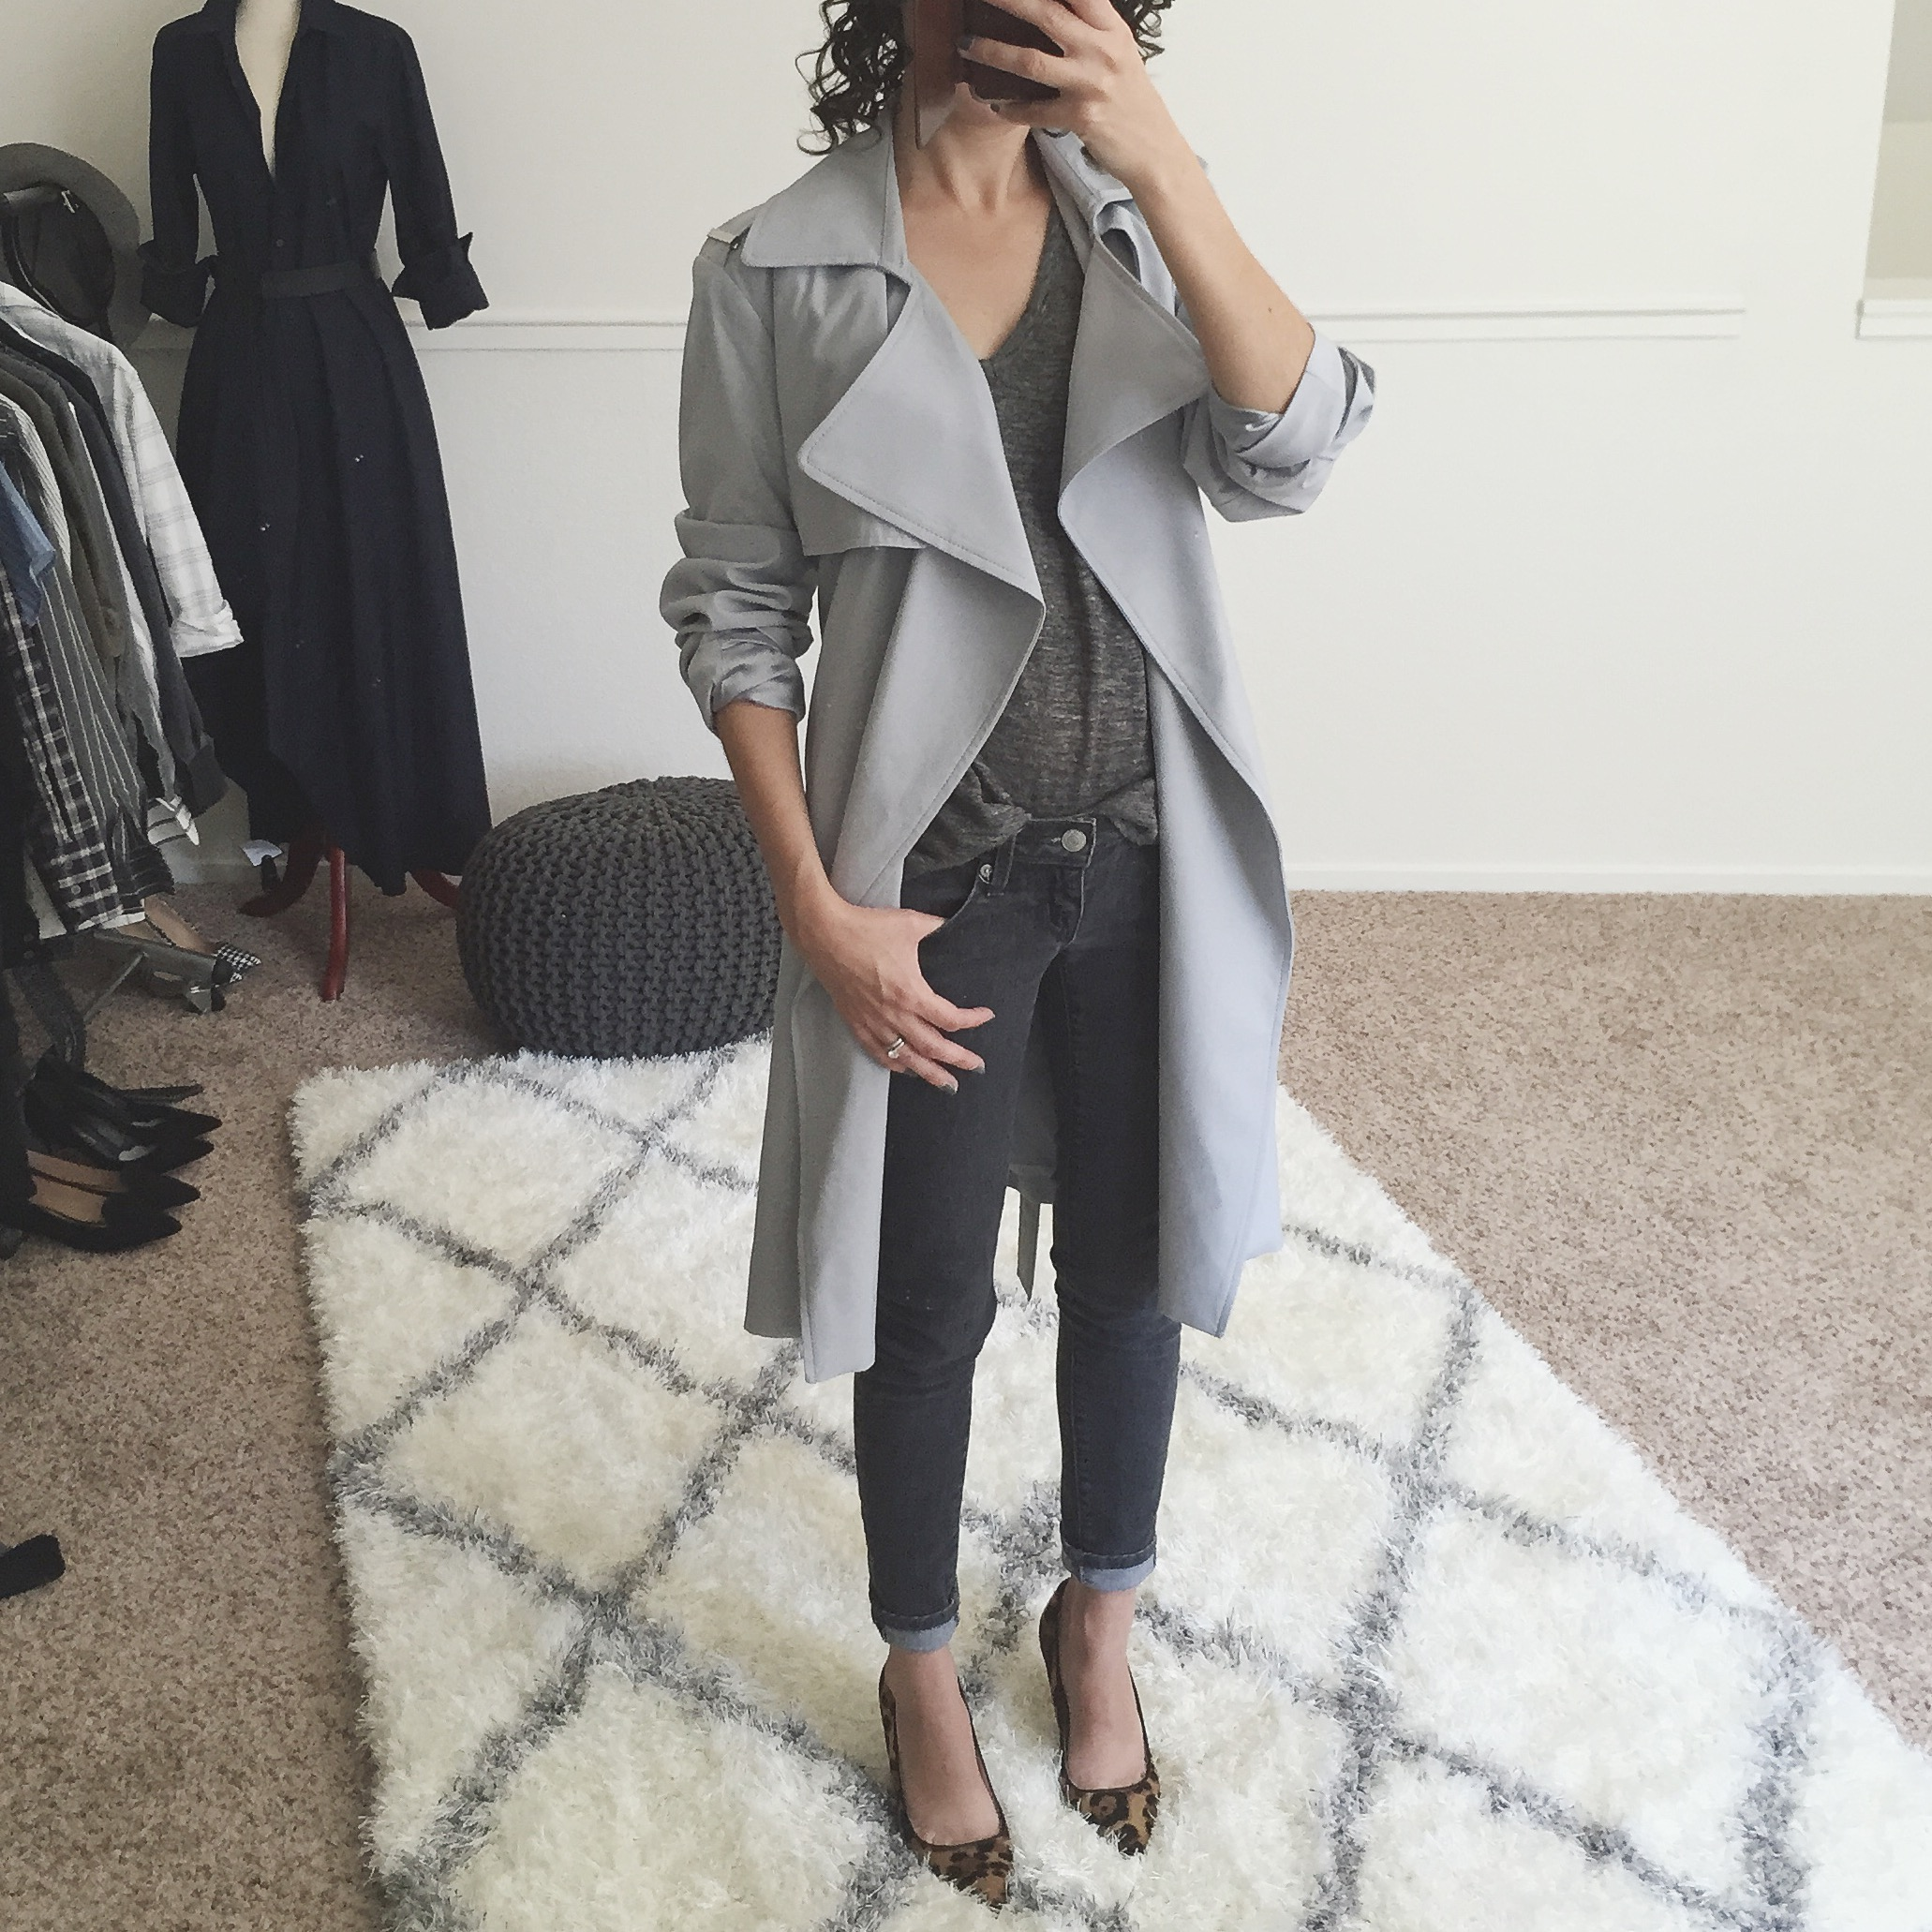 Fit Review Friday – Mango Drapey Trench vs. Banana Republic Petite